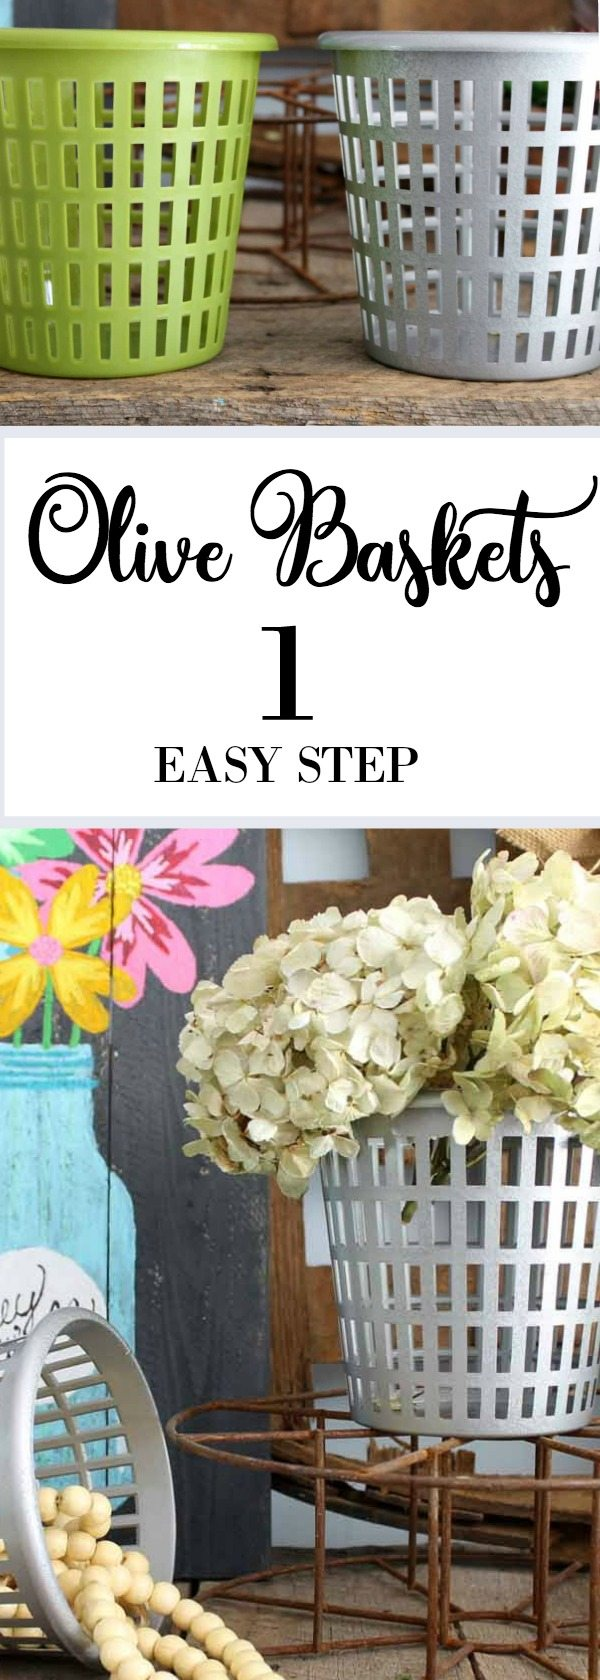 Olive Baskets easy to make decor great for farmhouse or rustic